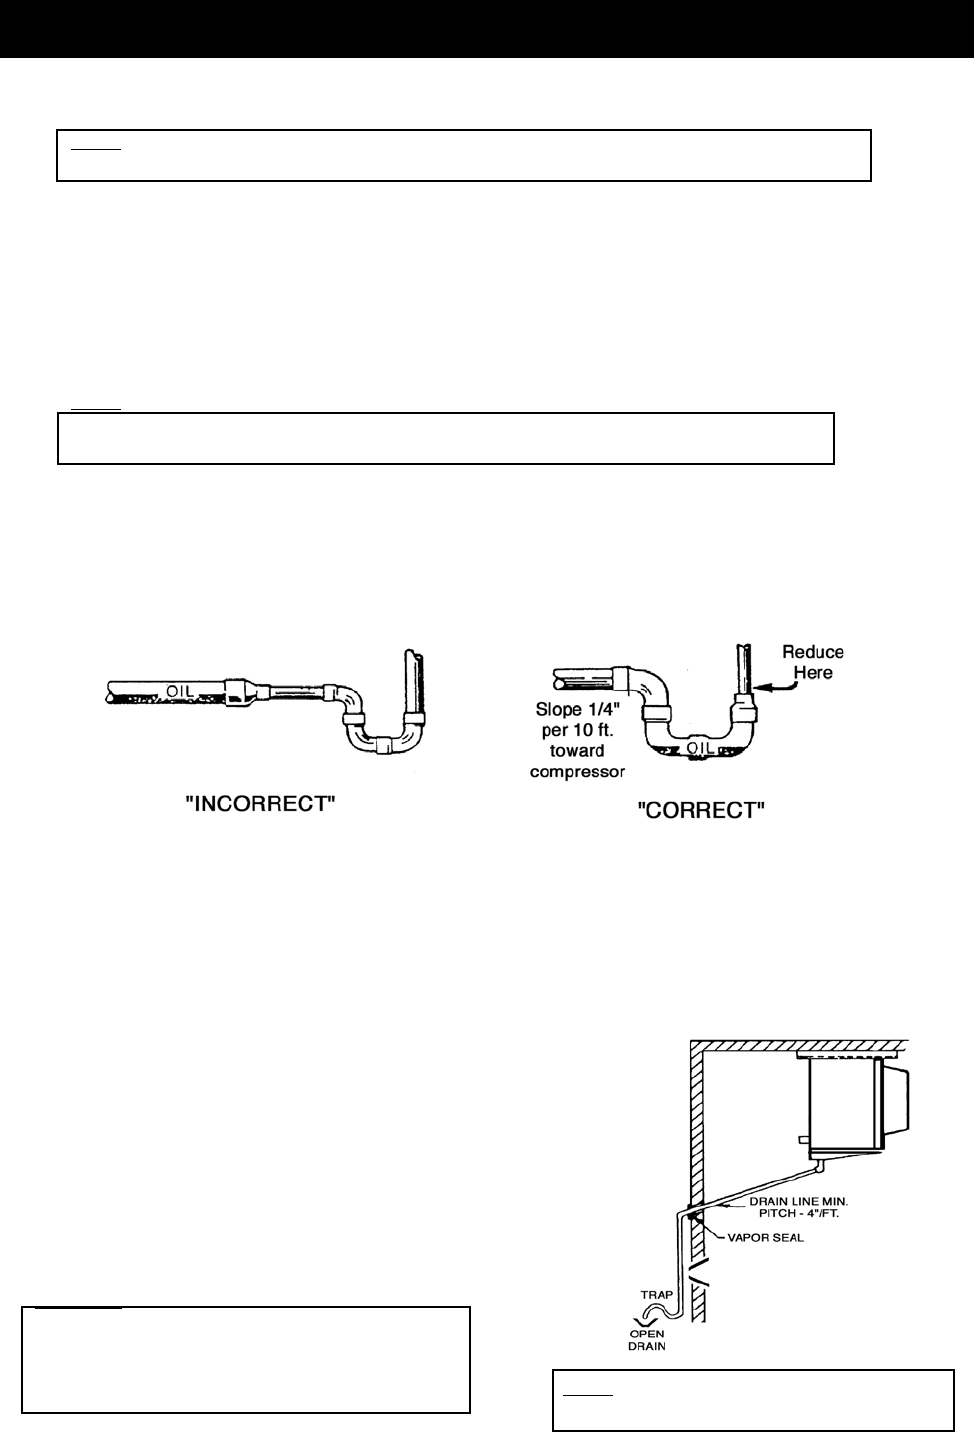 Heatcraft Refrigeration Products Flexpack 25006801 Users Manual 3ph Condenser Wiring Diagram 9